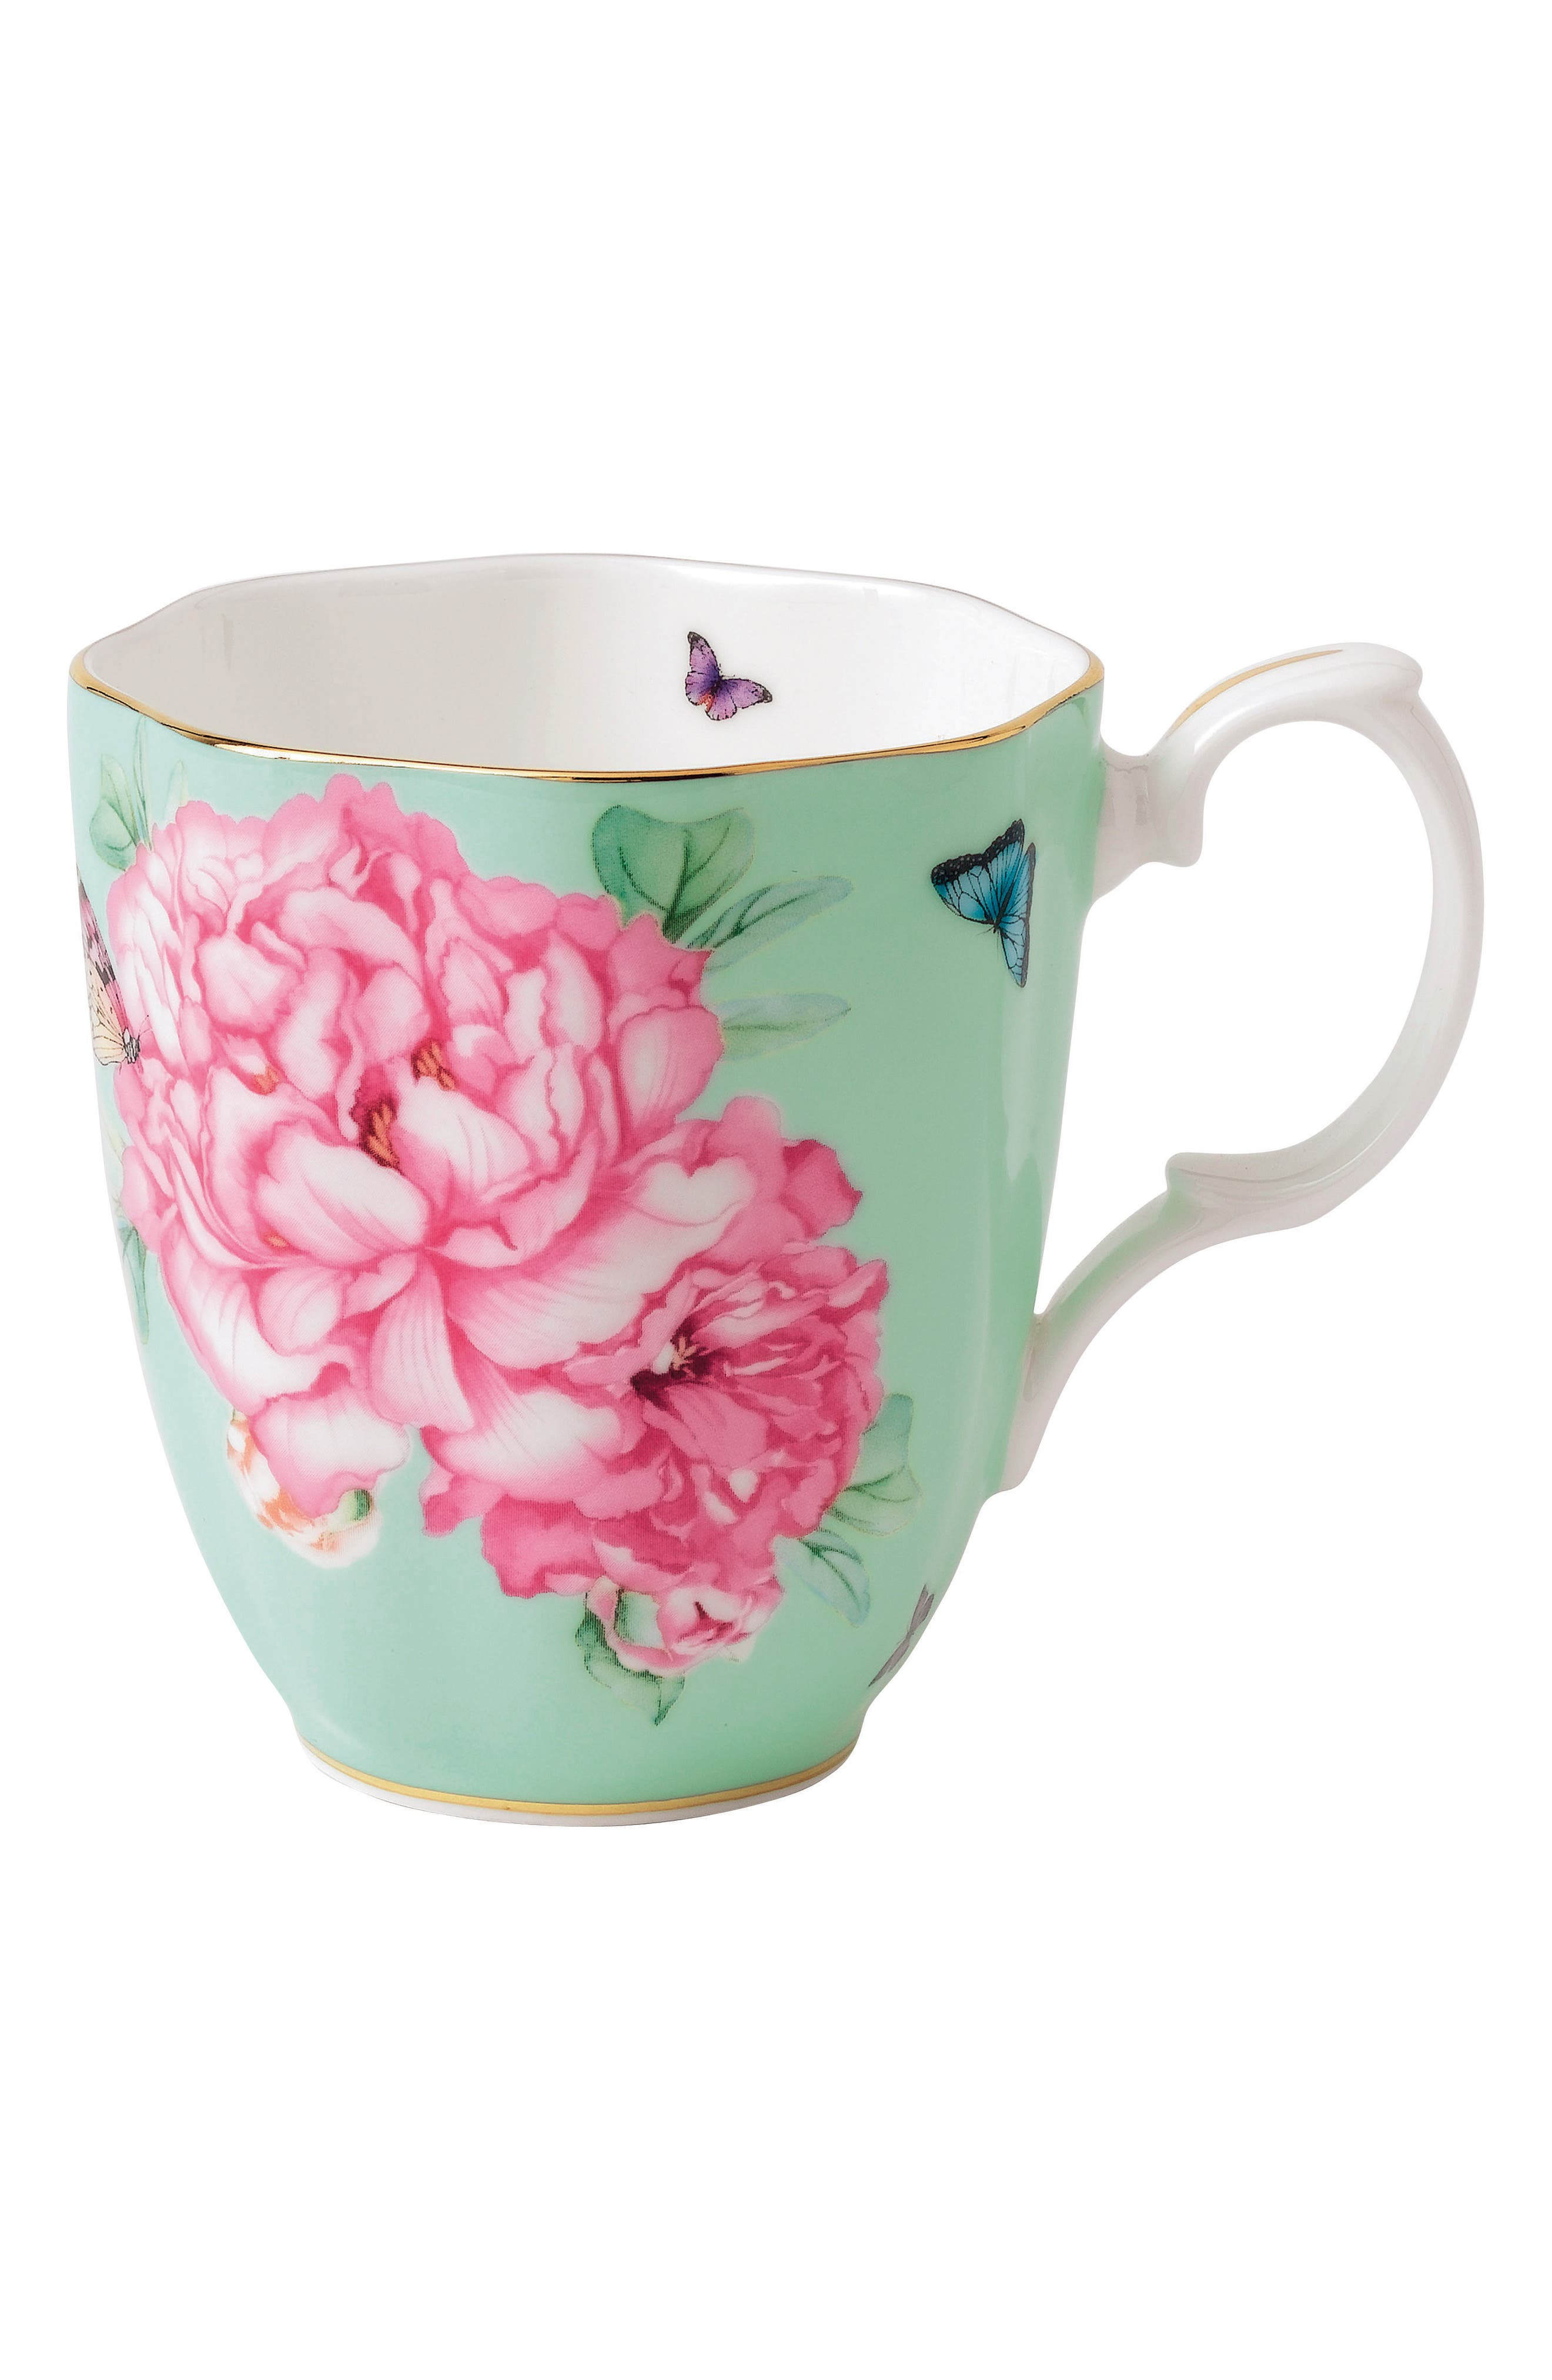 Main Image - Miranda Kerr for Royal Albert Friendship Vintage Mug